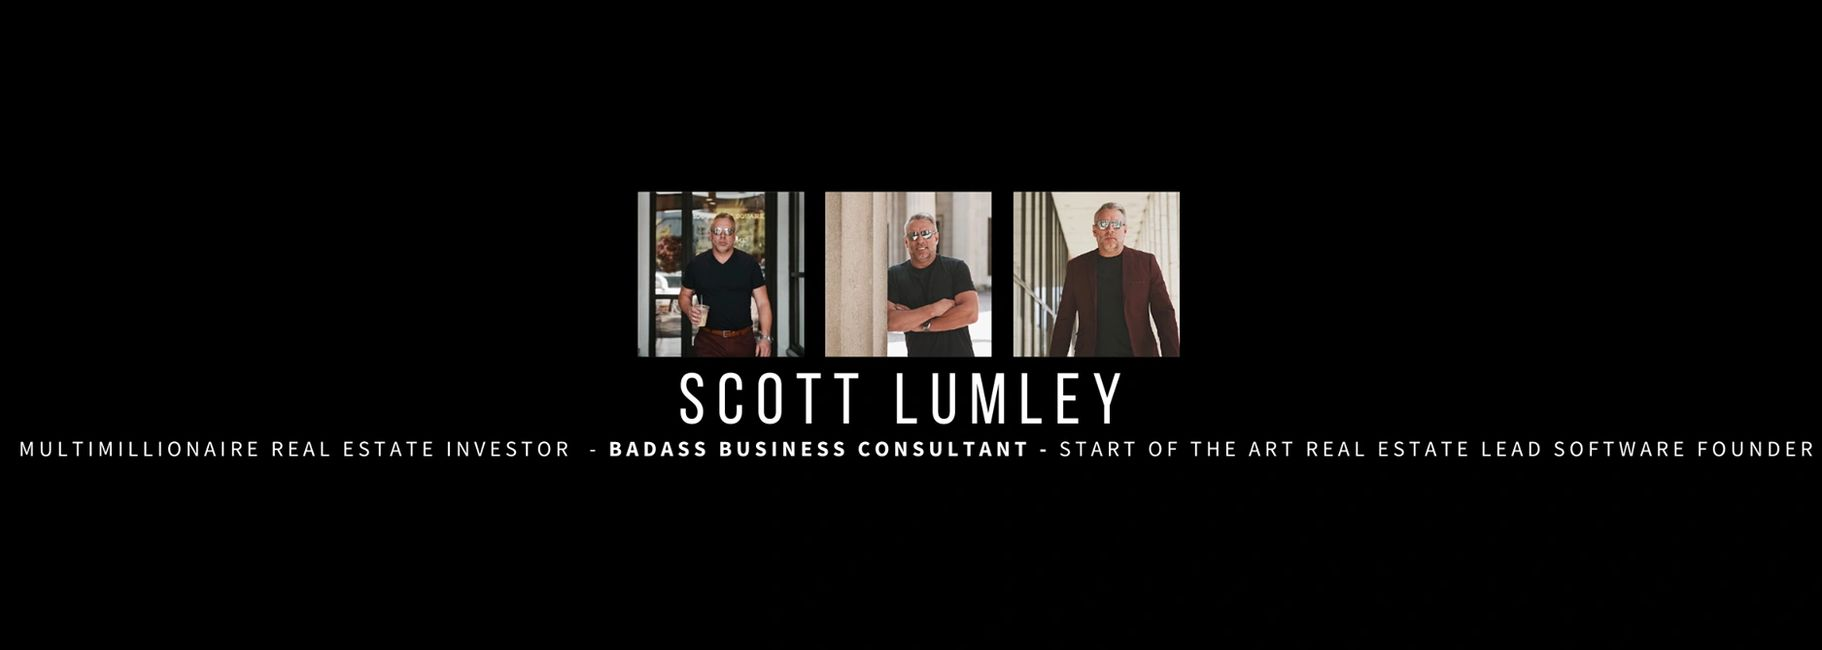 Scott Lumley business consultant and Real Estate Expert